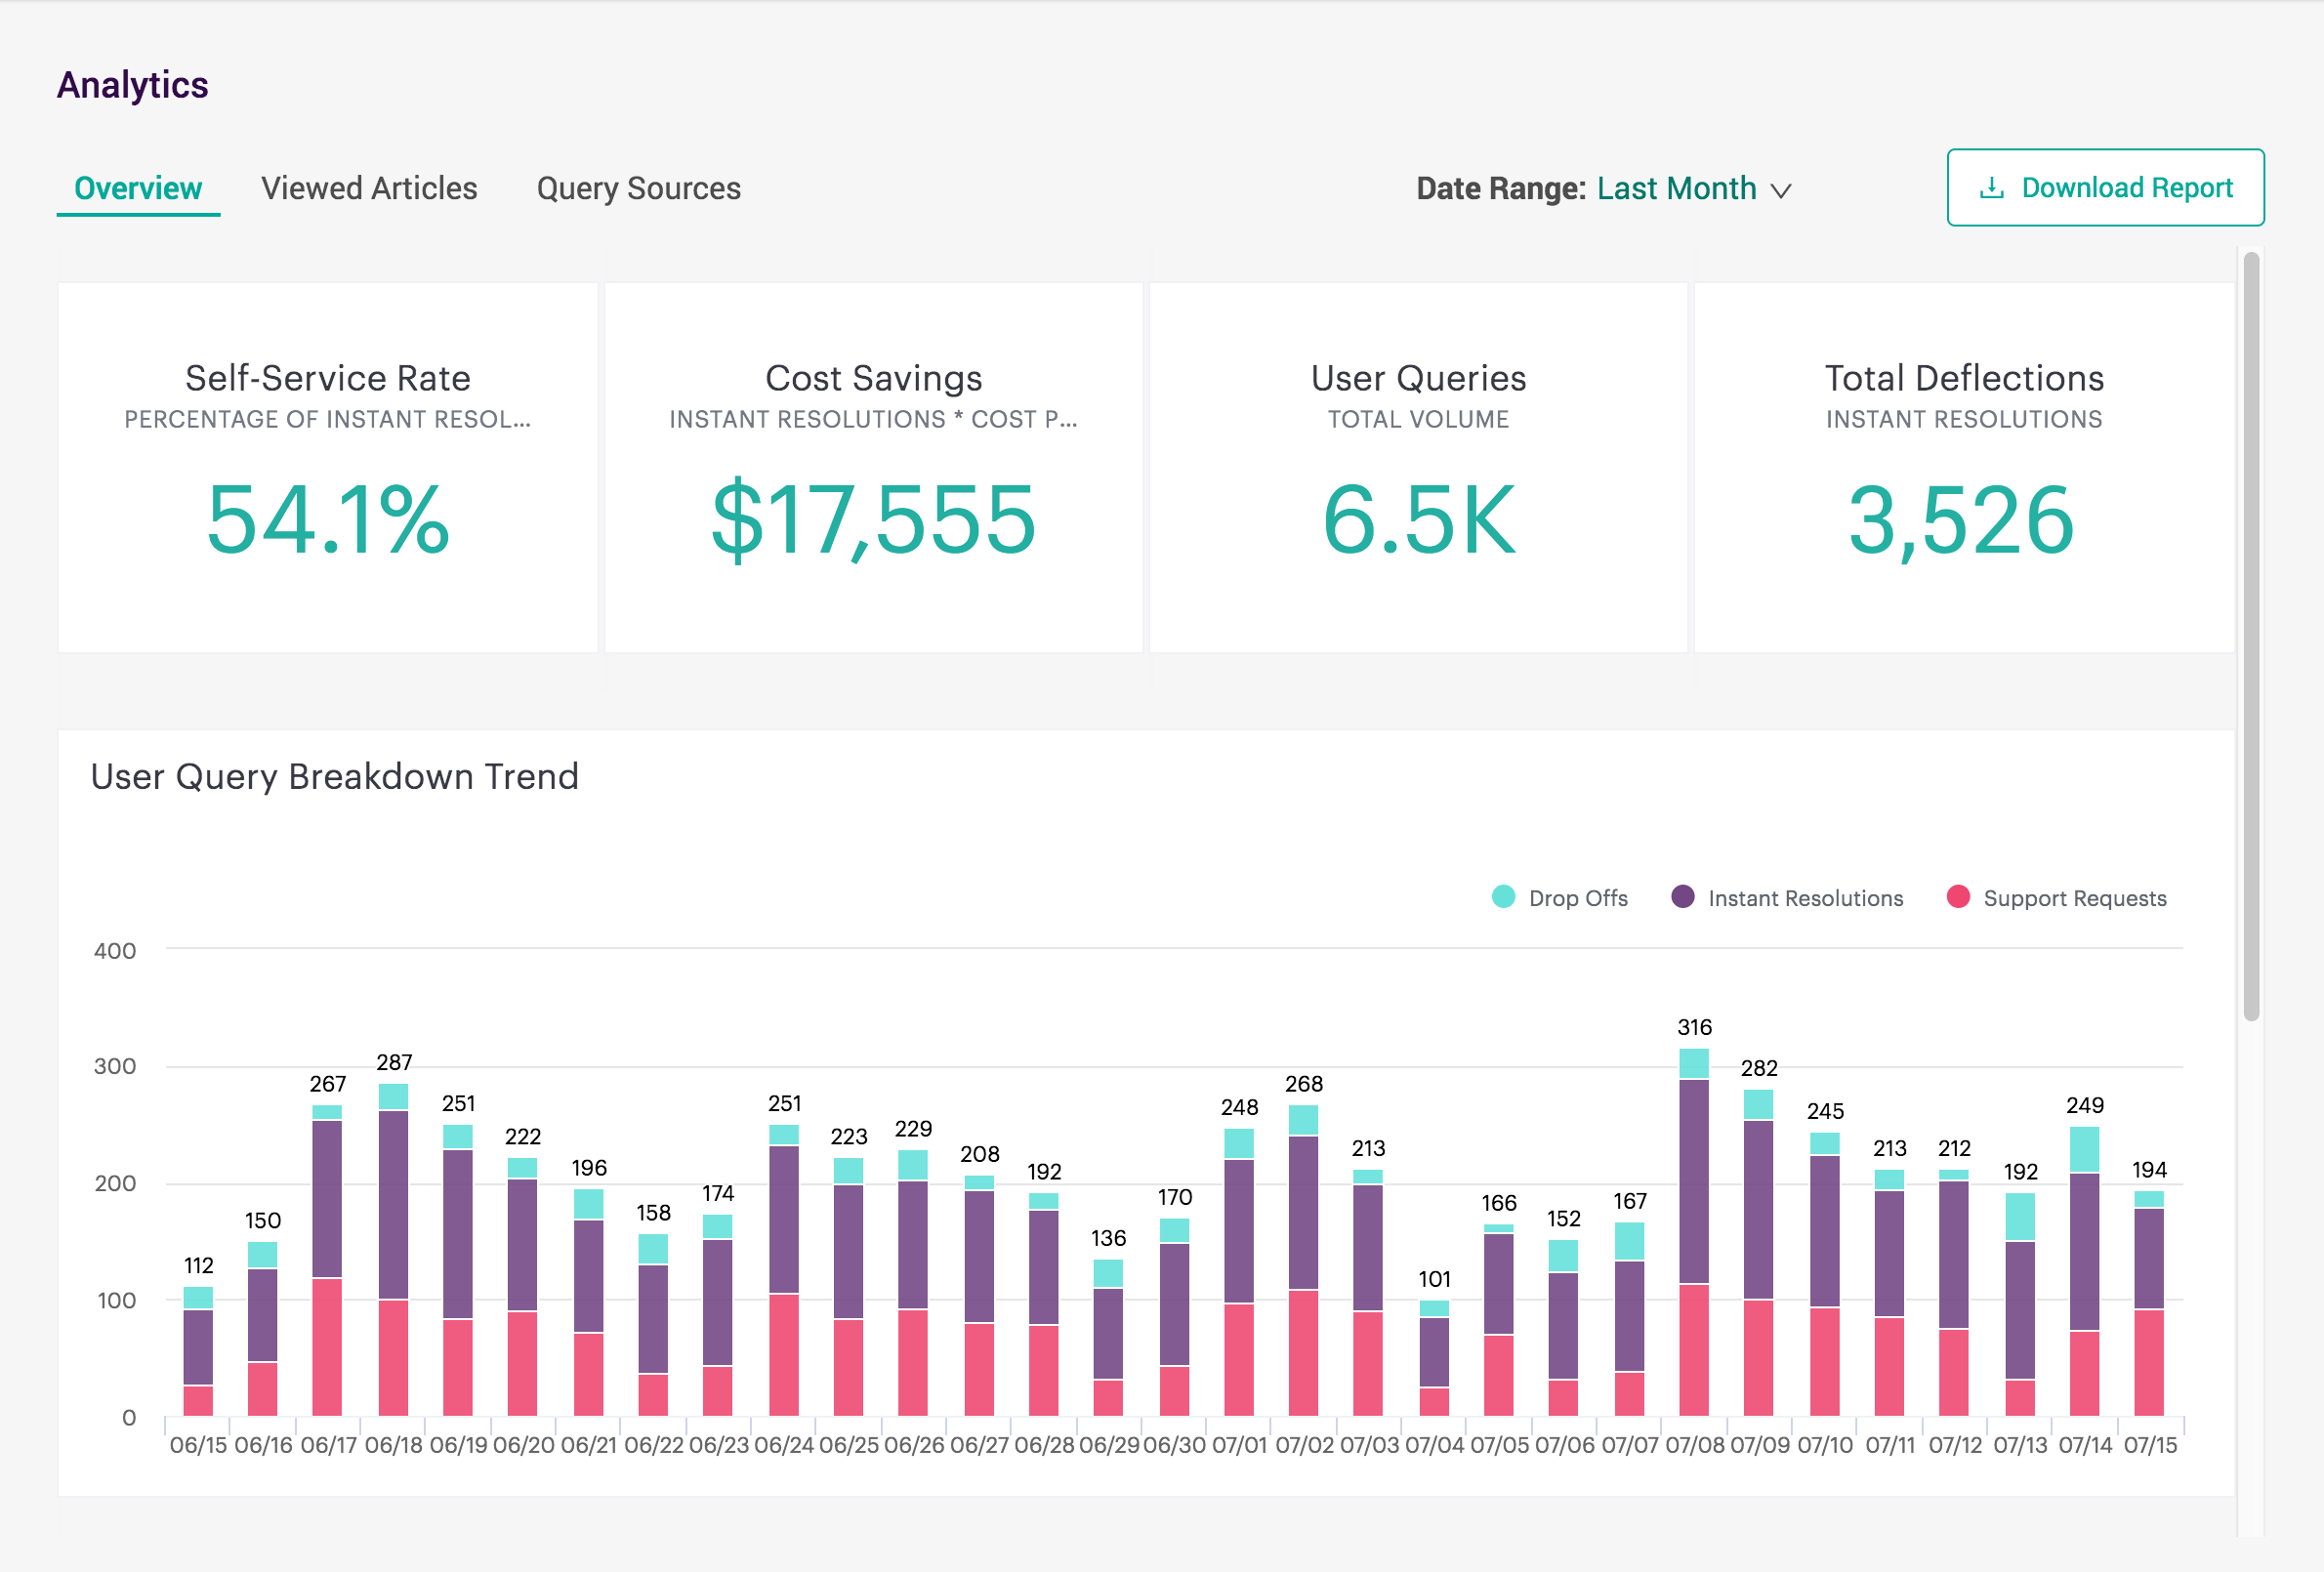 Dashboard Overview